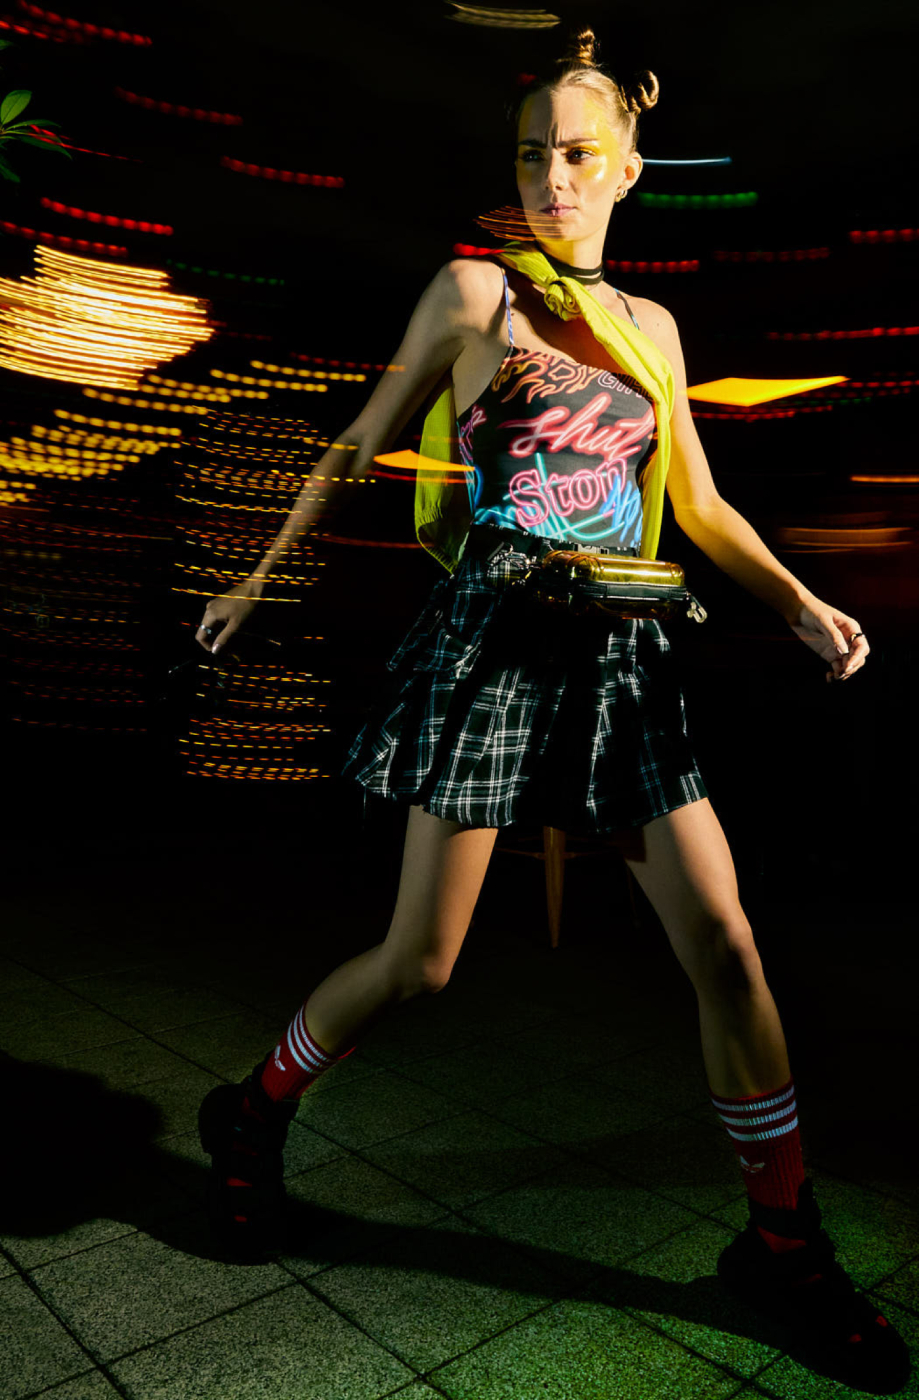 Model Reka Fedra with light trails behind shot by Illya Ovchar for Glamour Hungary